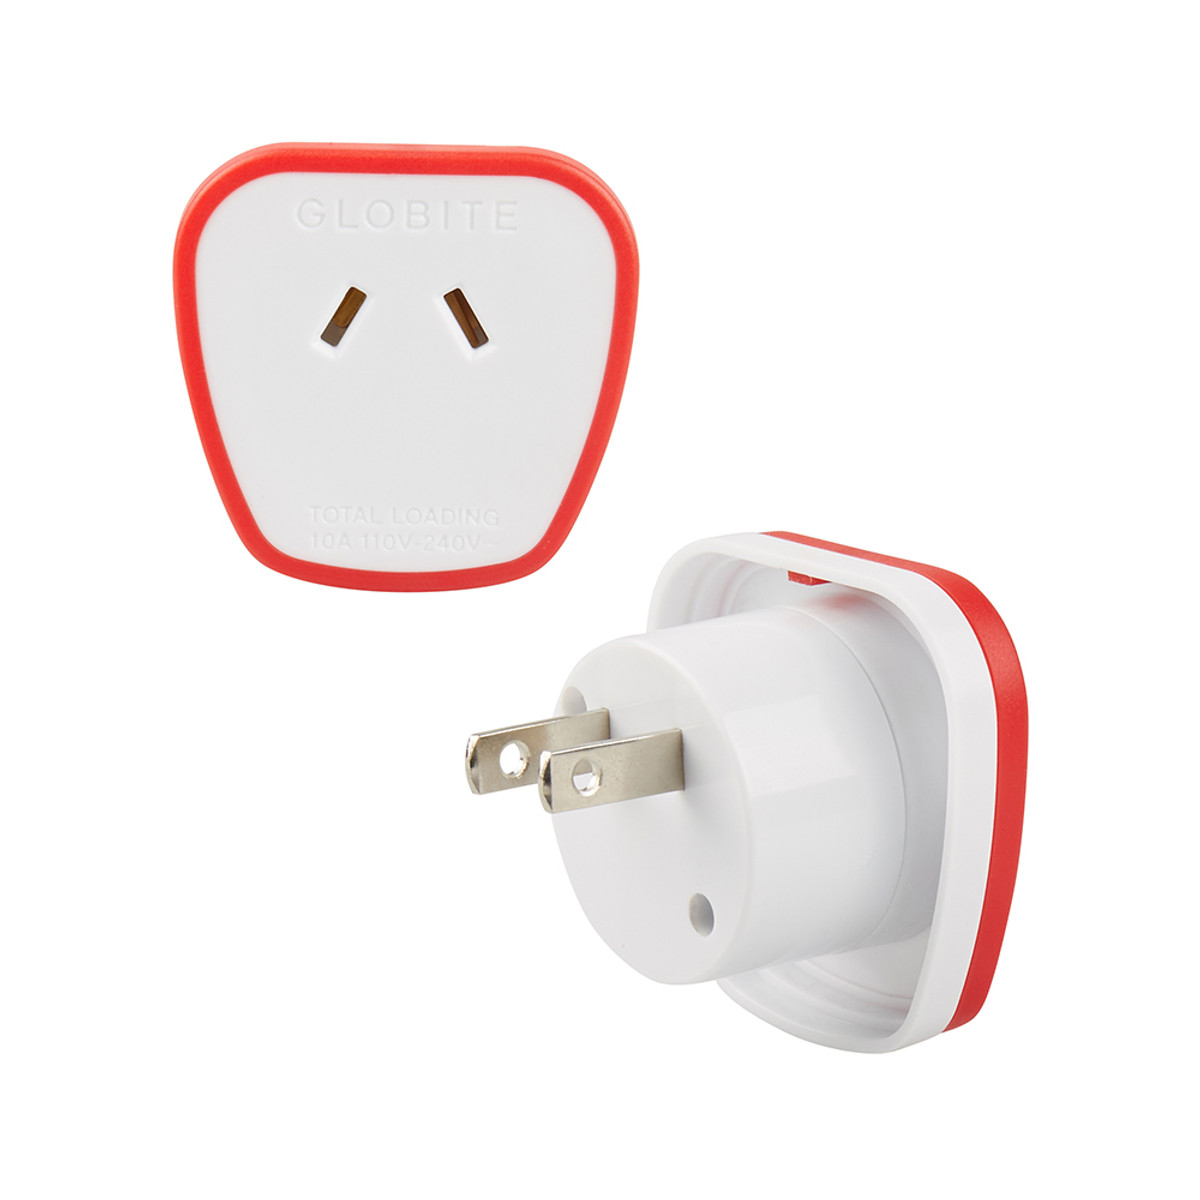 Globite USA/Japan electrical adaptor two pin